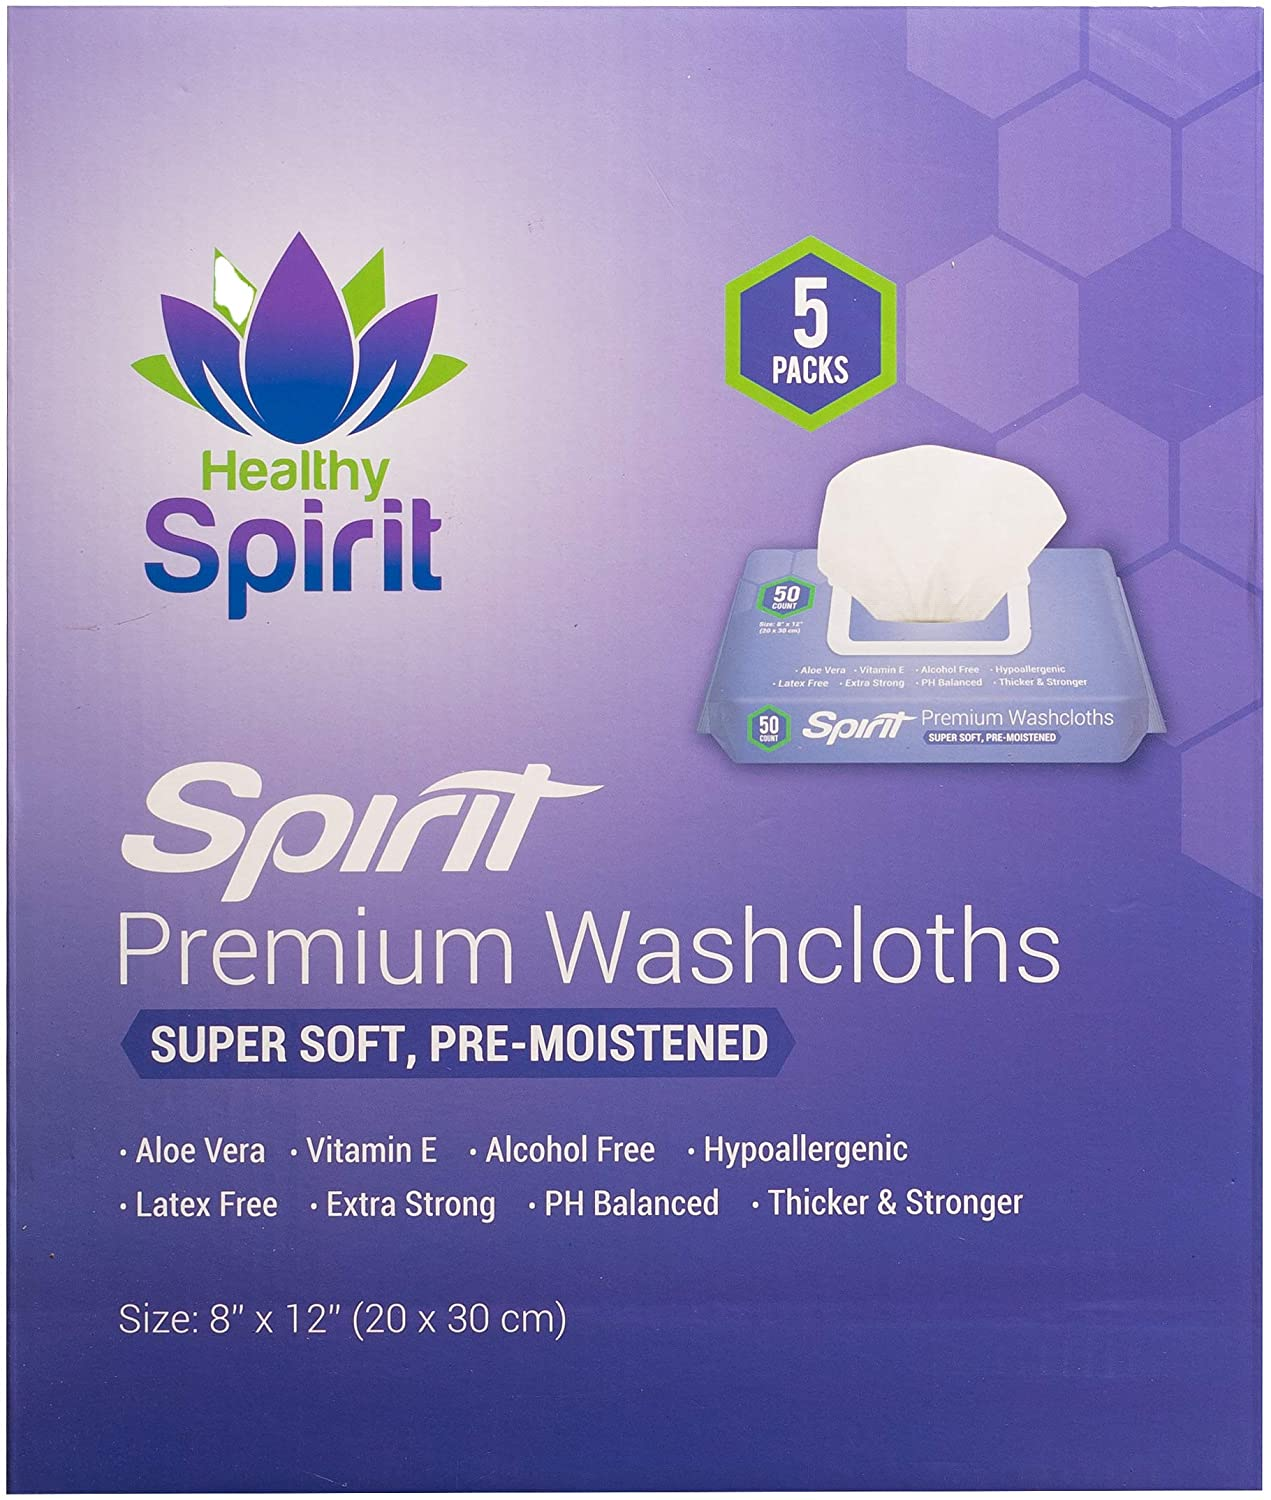 Healthy Spirit Incontinence & Cleansing Disposable Wet Wipes For Adults, 250-Count